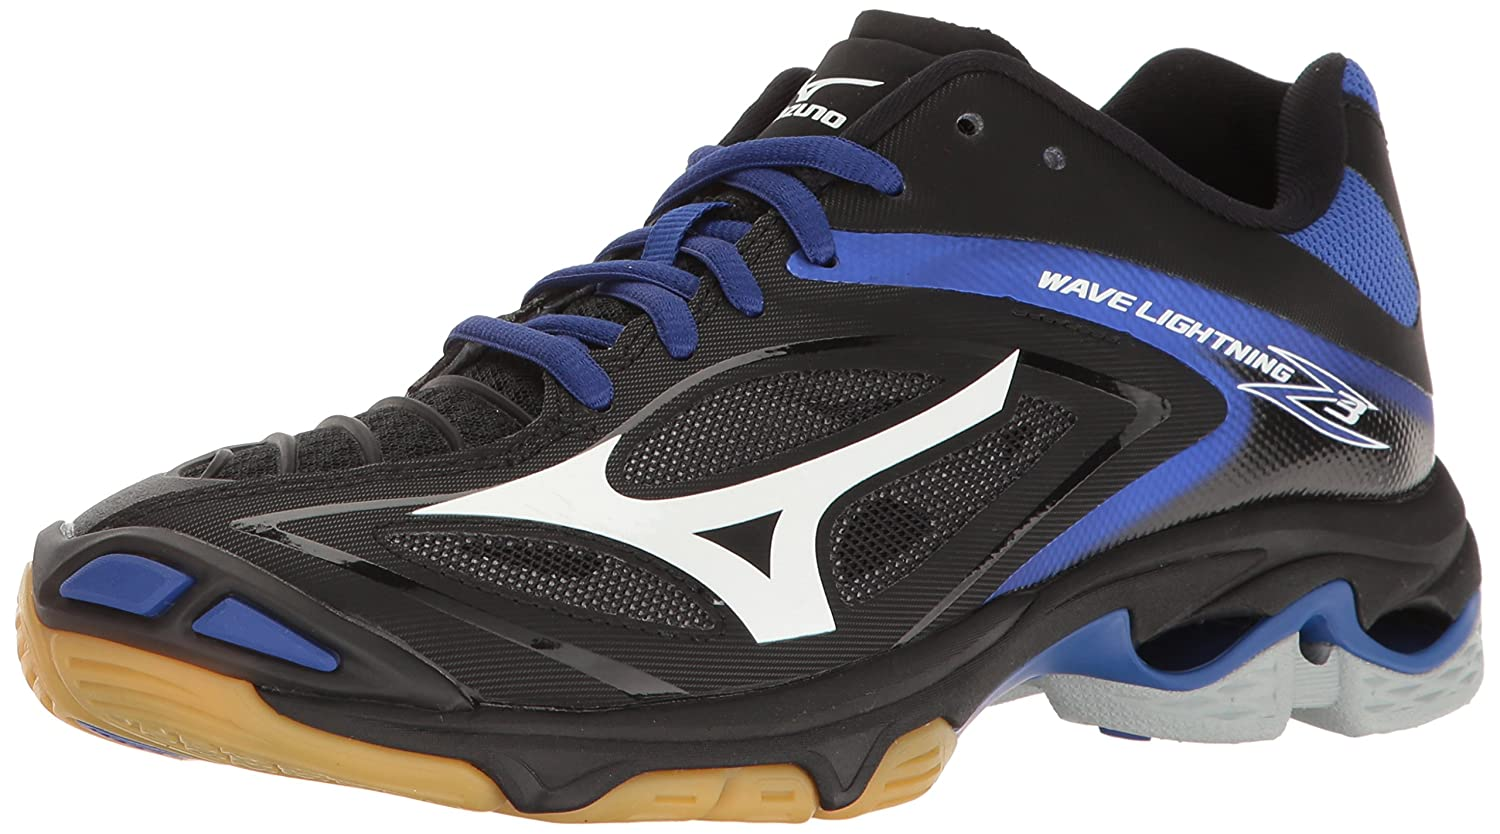 Mizuno Women's Wave Lightning Z3 Volleyball Shoe B01MTNN1LP 11 B(M) US|Black/Royal